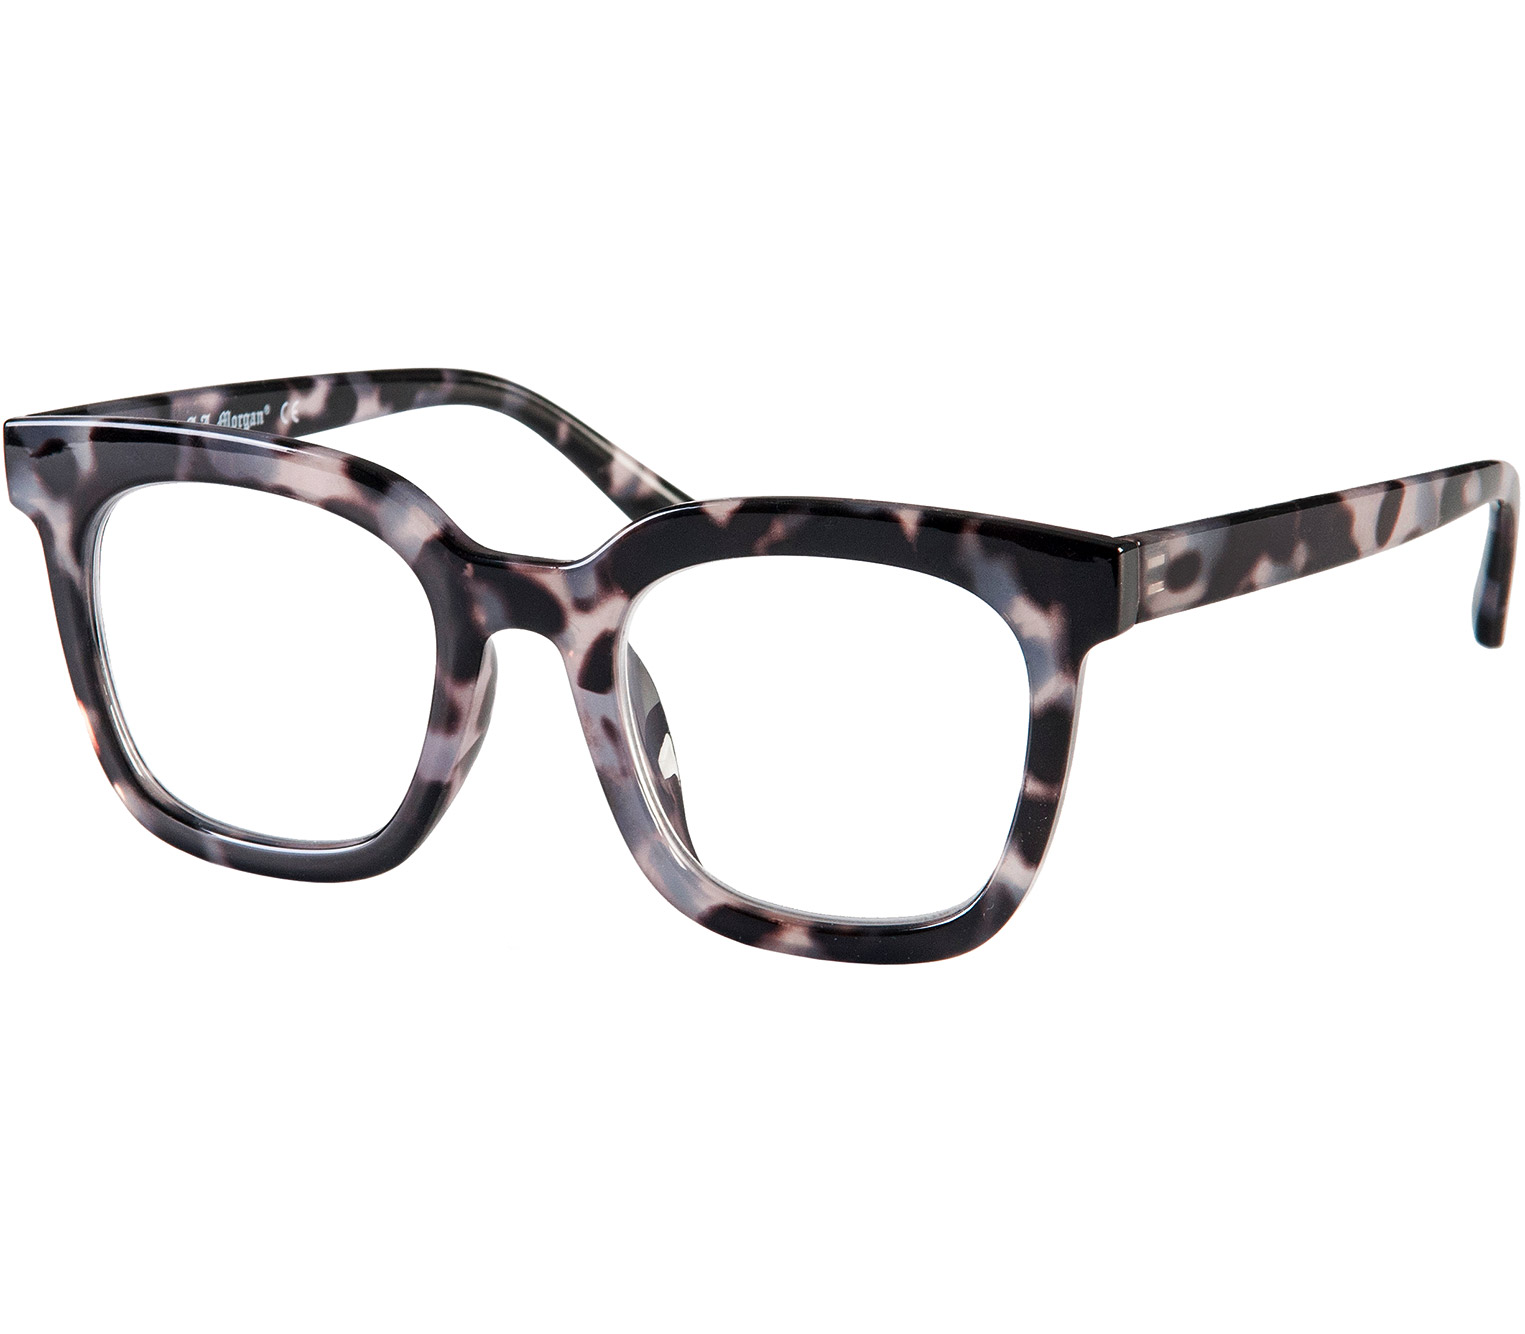 Main Image (Angle) - Superstar (Grey Tortoise) Reading Glasses